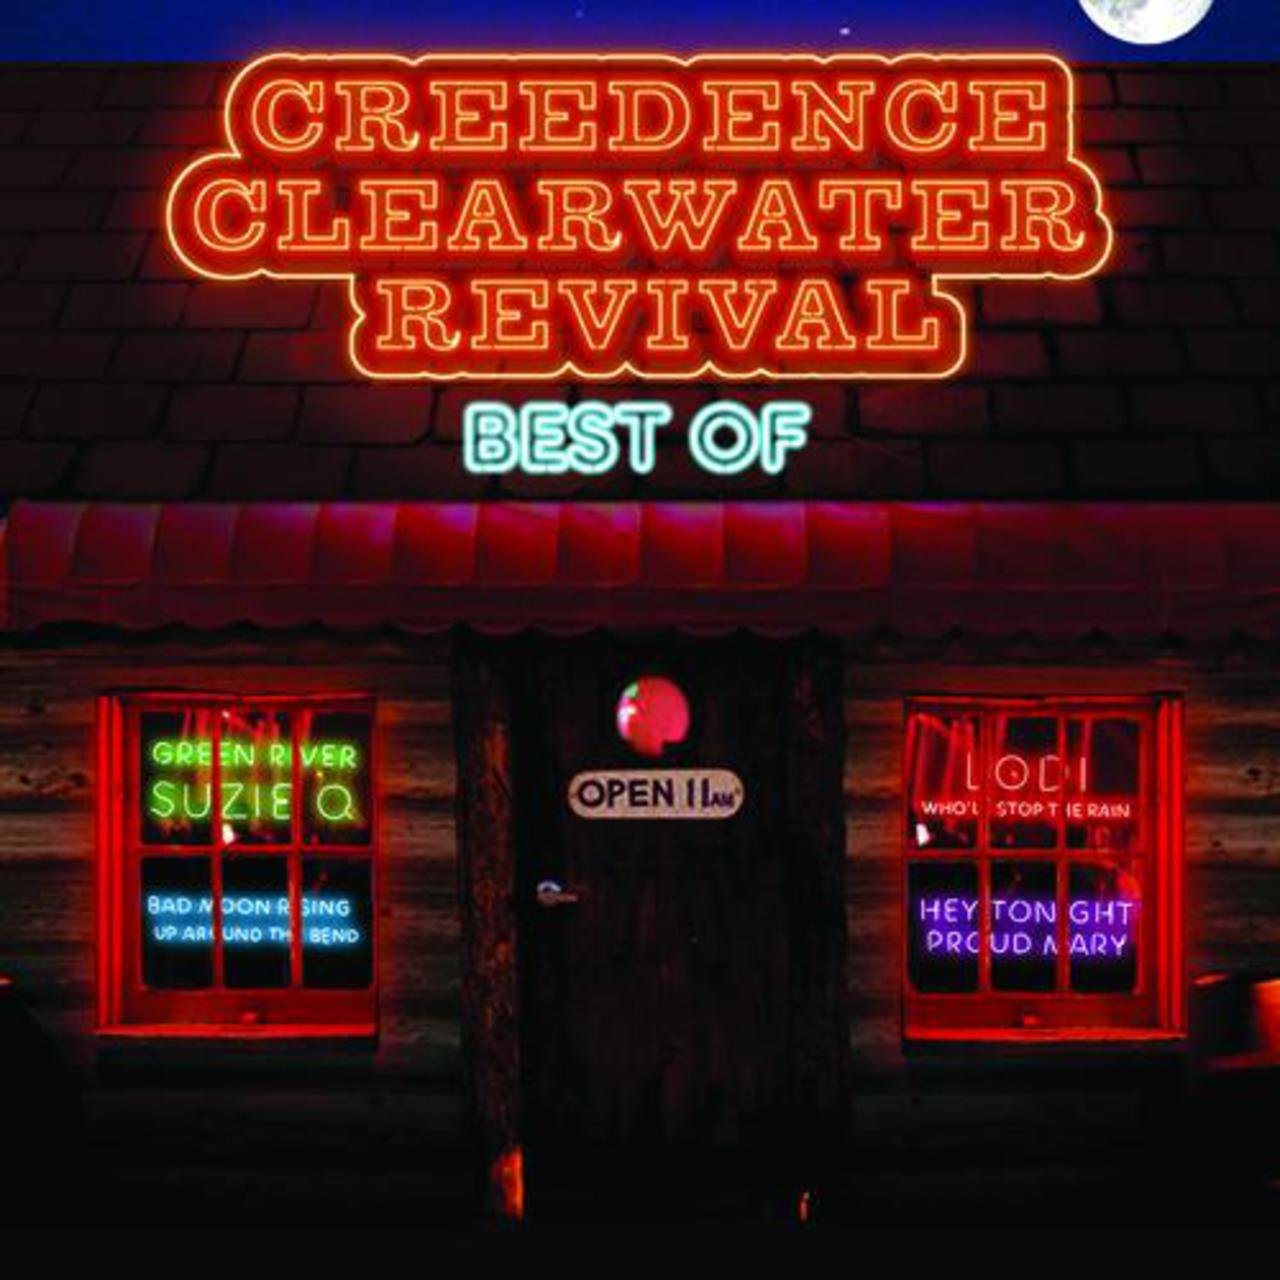 Creedence Clearwater Revival - Best Of (Deluxe)